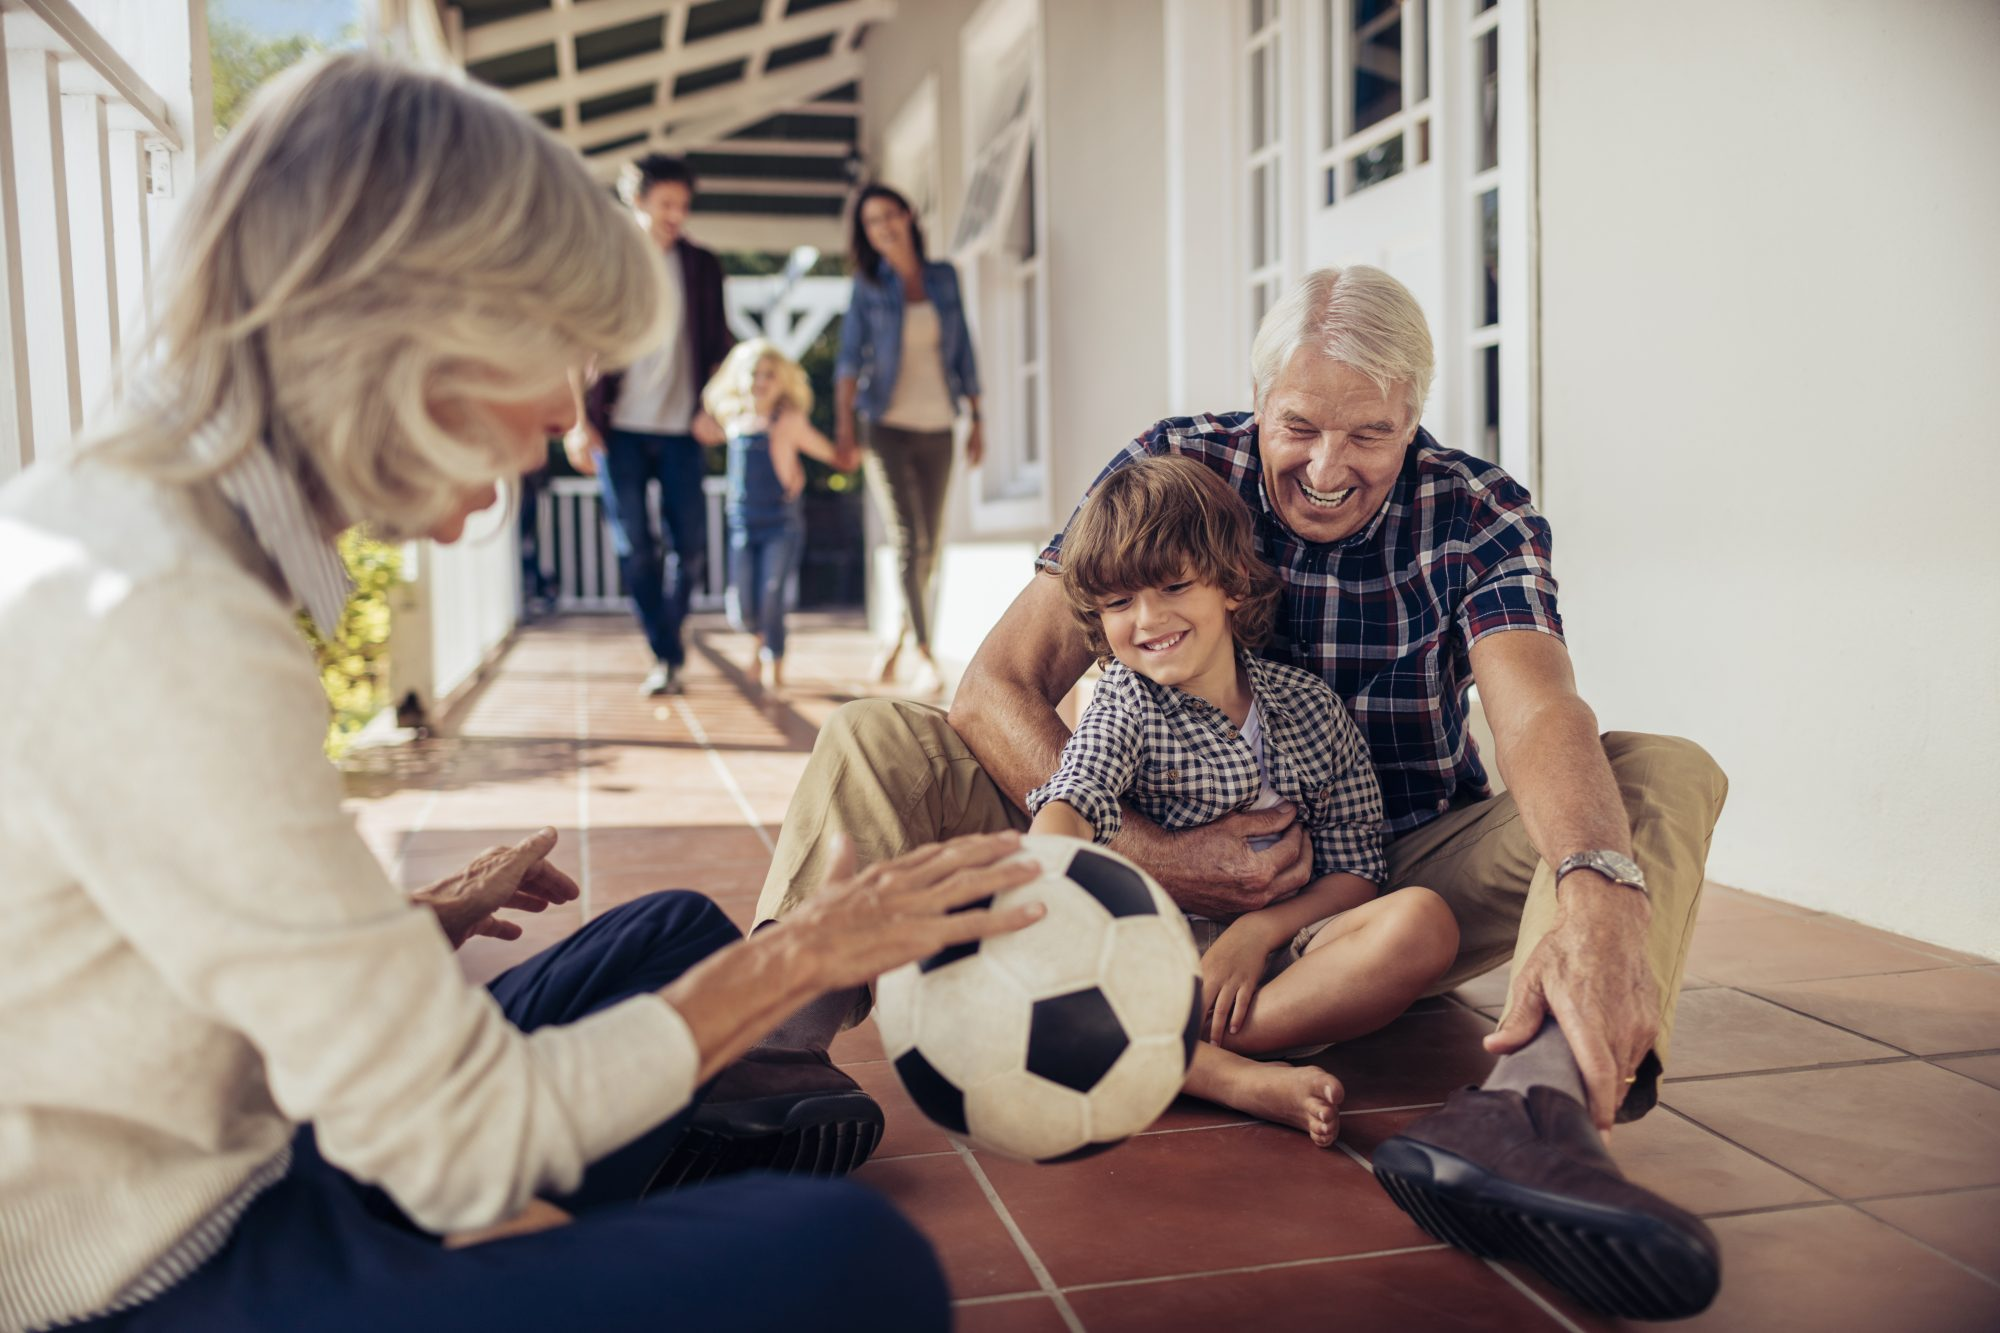 Grandfather and grandmother play soccer with their grandson on the patio while the rest of the family comes to join them.